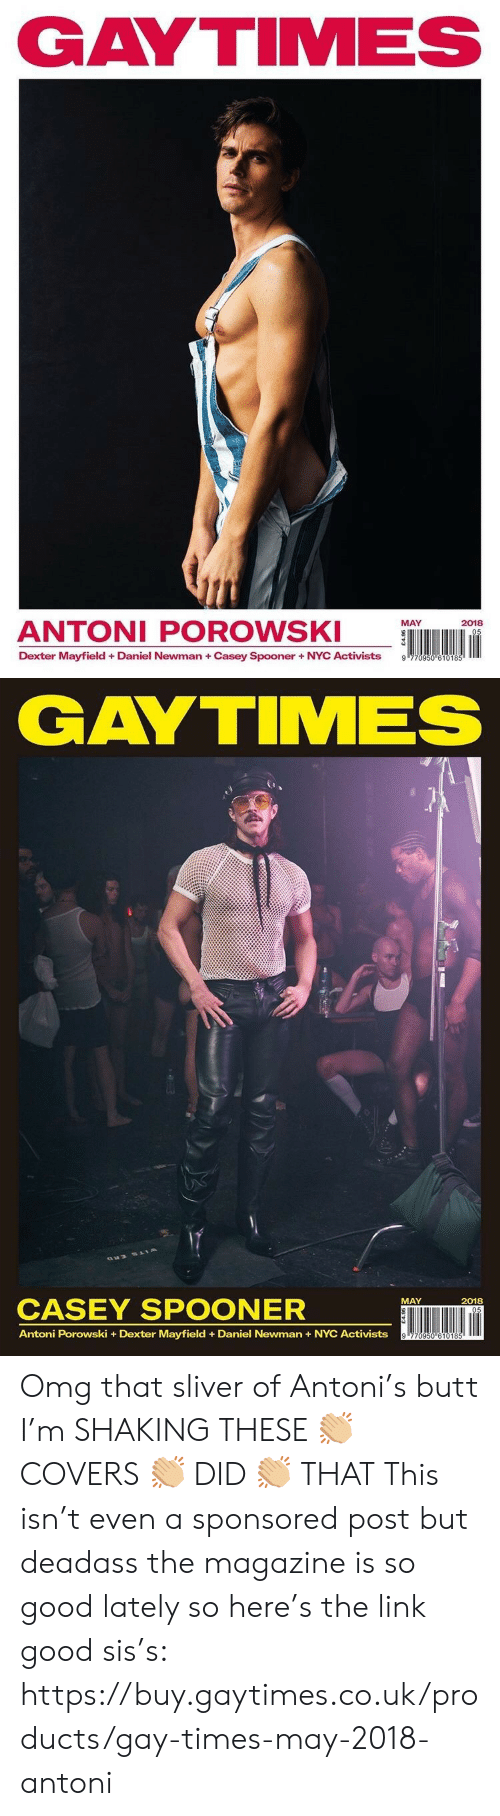 Butt, Newman, and Omg: GAYTIMES  ANTONI POROWS  MAY  2018  Dexter Mayfield + Daniel Newman + Casey Spooner + NYC Activists  9   GAYTIMES  CASEY SPOONER  ÜNI lin  MAY  2018  Antoni Porowski +Dexter Mayfield Daniel Newman+NYC Activists Omg that sliver of Antoni's butt I'm SHAKING THESE 👏🏼 COVERS 👏🏼 DID 👏🏼 THAT  This isn't even a sponsored post but deadass the magazine is so good lately so here's the link good sis's: https://buy.gaytimes.co.uk/products/gay-times-may-2018-antoni